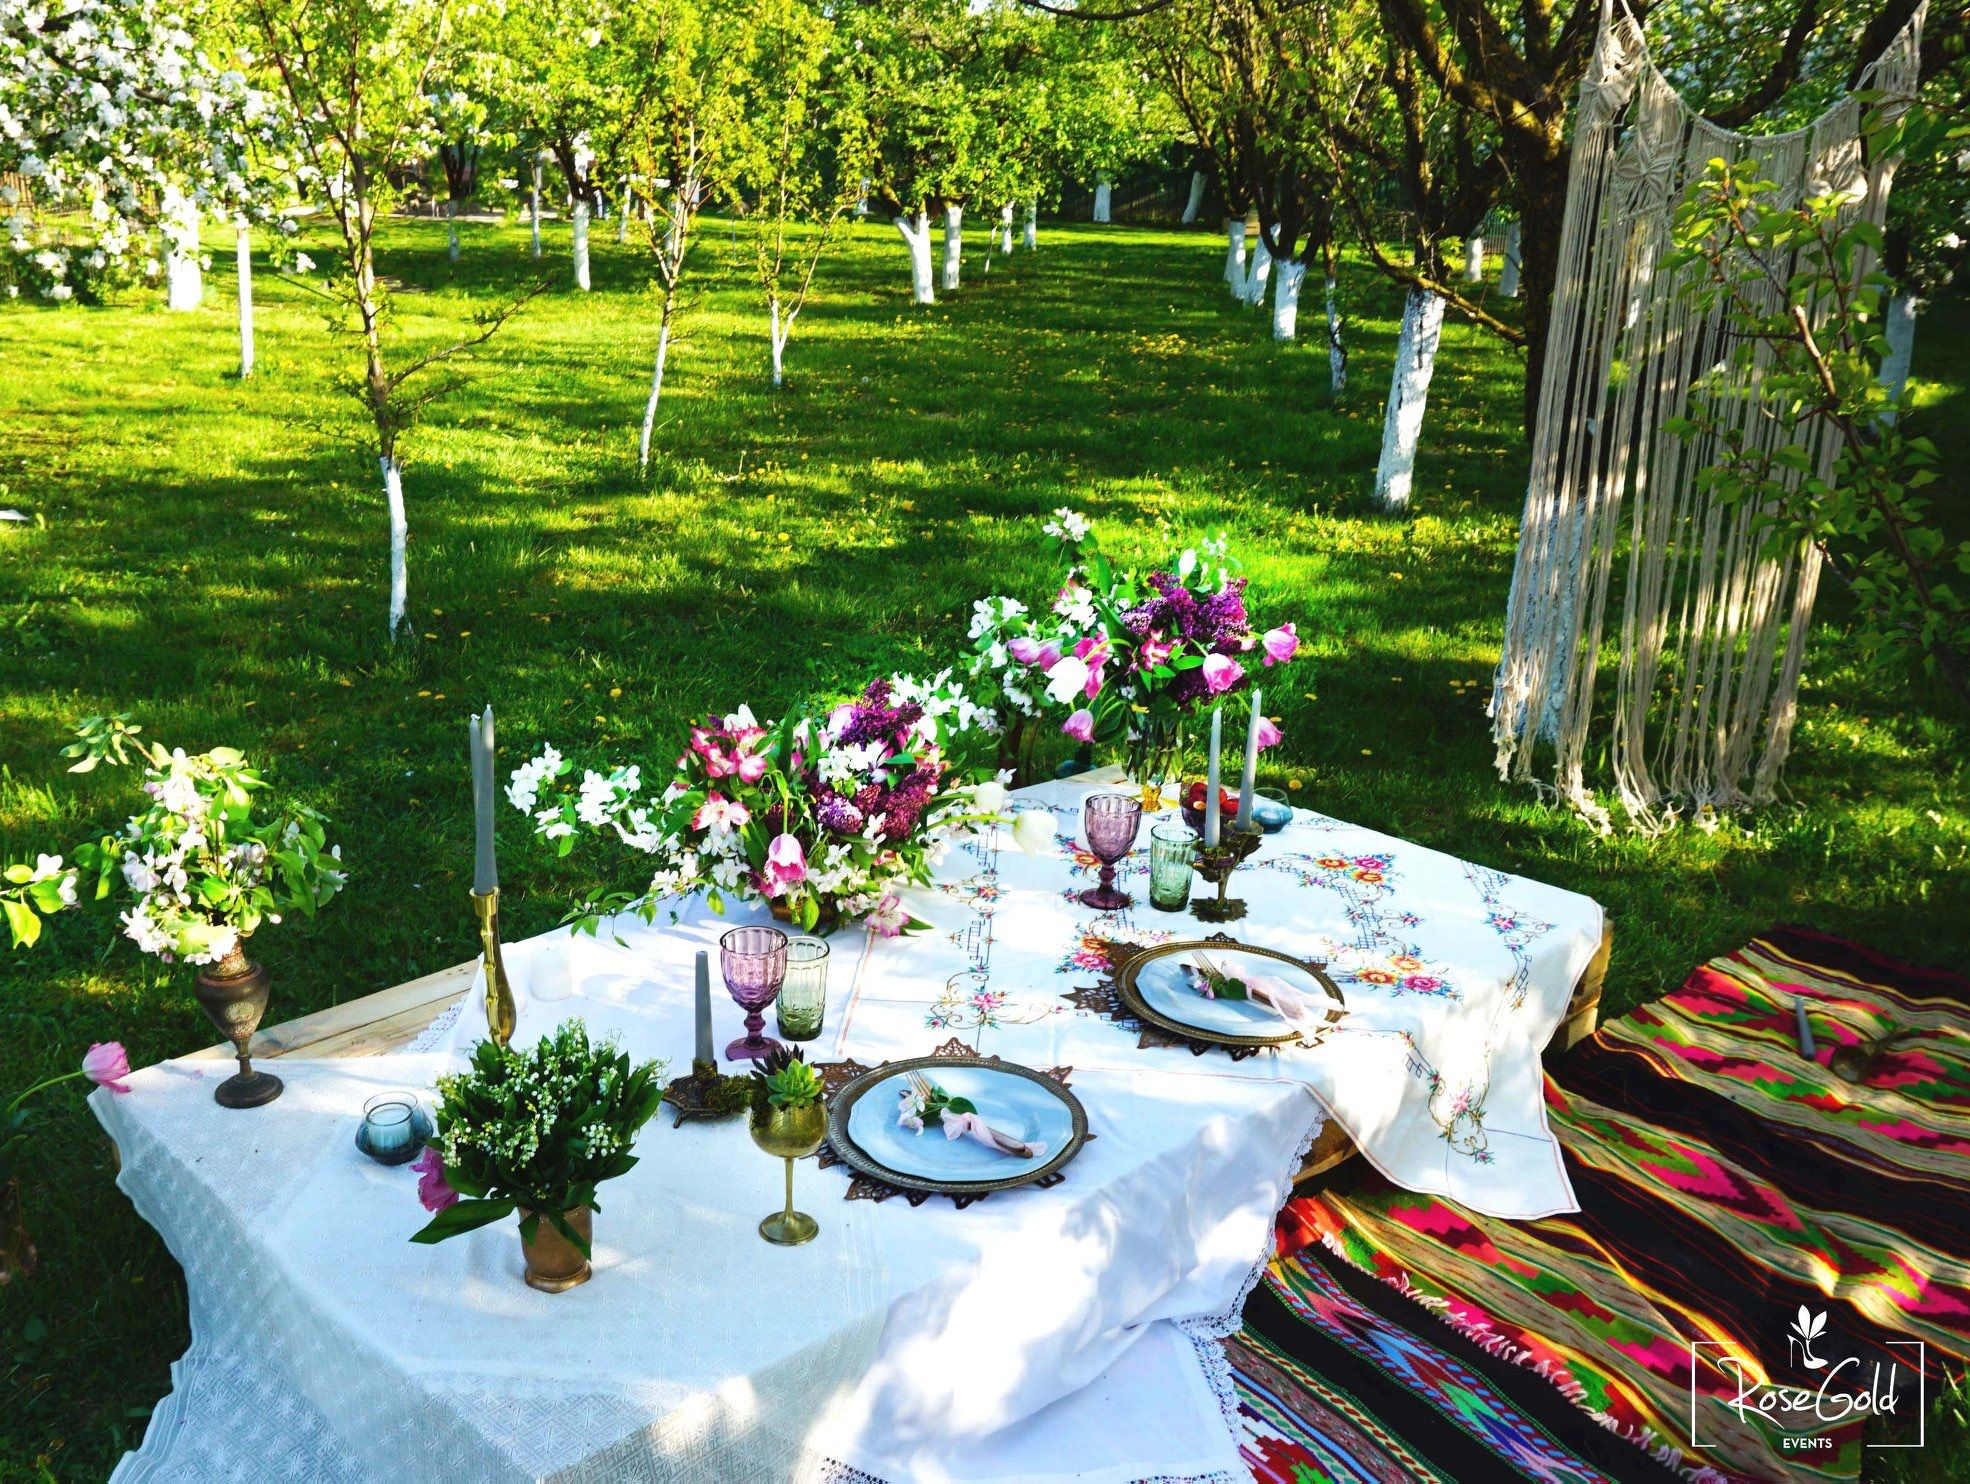 Pin by RoseGold Events on Spring garden engagement party | Pinterest